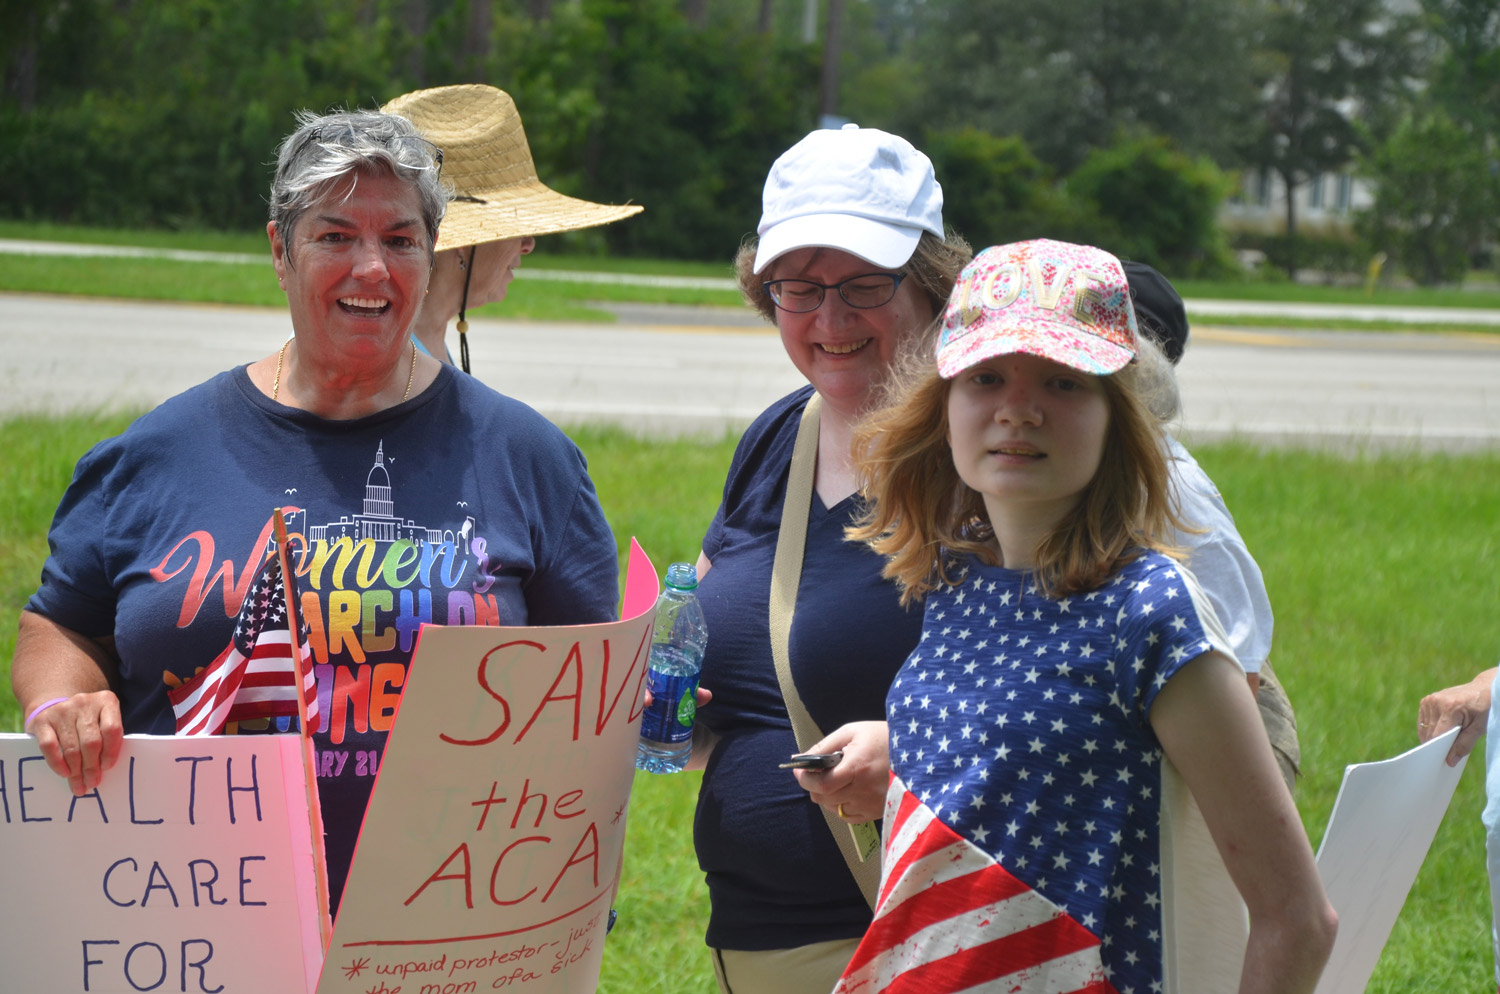 A few of today's protesters on State Road 100 by the Florida Hospital Flagler entrance: from left, Pat Ferraro, Nancy Nally, and Nally's 14-year-old daughter, Bridget. Click on the image for larger view. (© FlaglerLive)